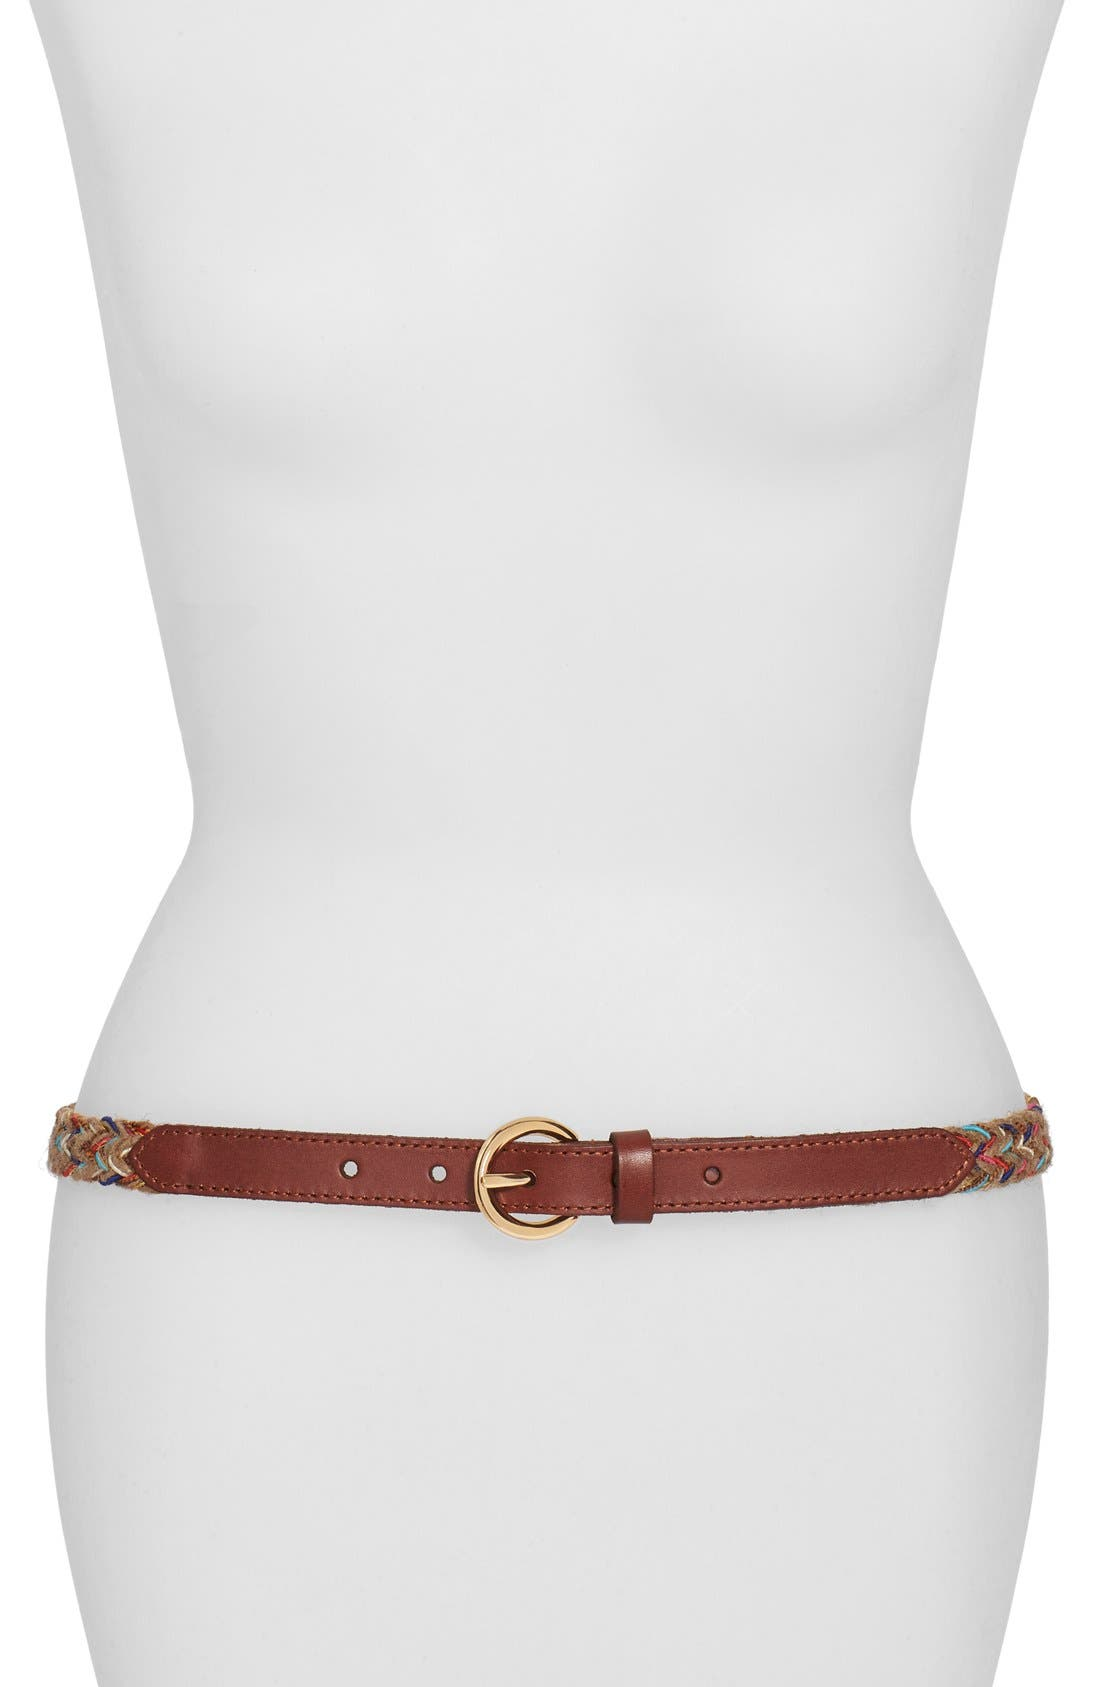 Alternate Image 1 Selected - Another Line Multicolor Woven Jute Belt